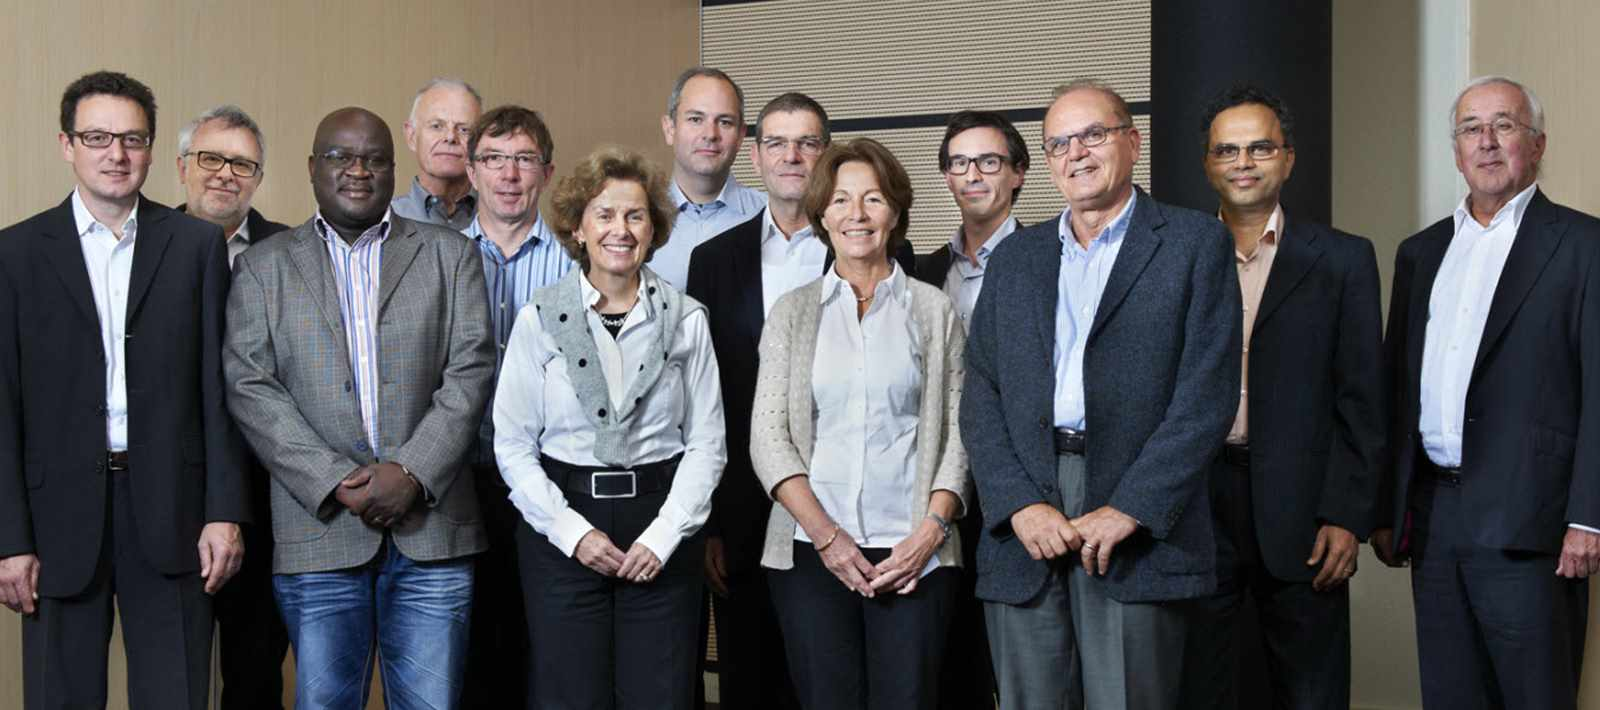 Representatives of the Partner Universities of the LafargeHolcim Foundation met in Lausanne, …